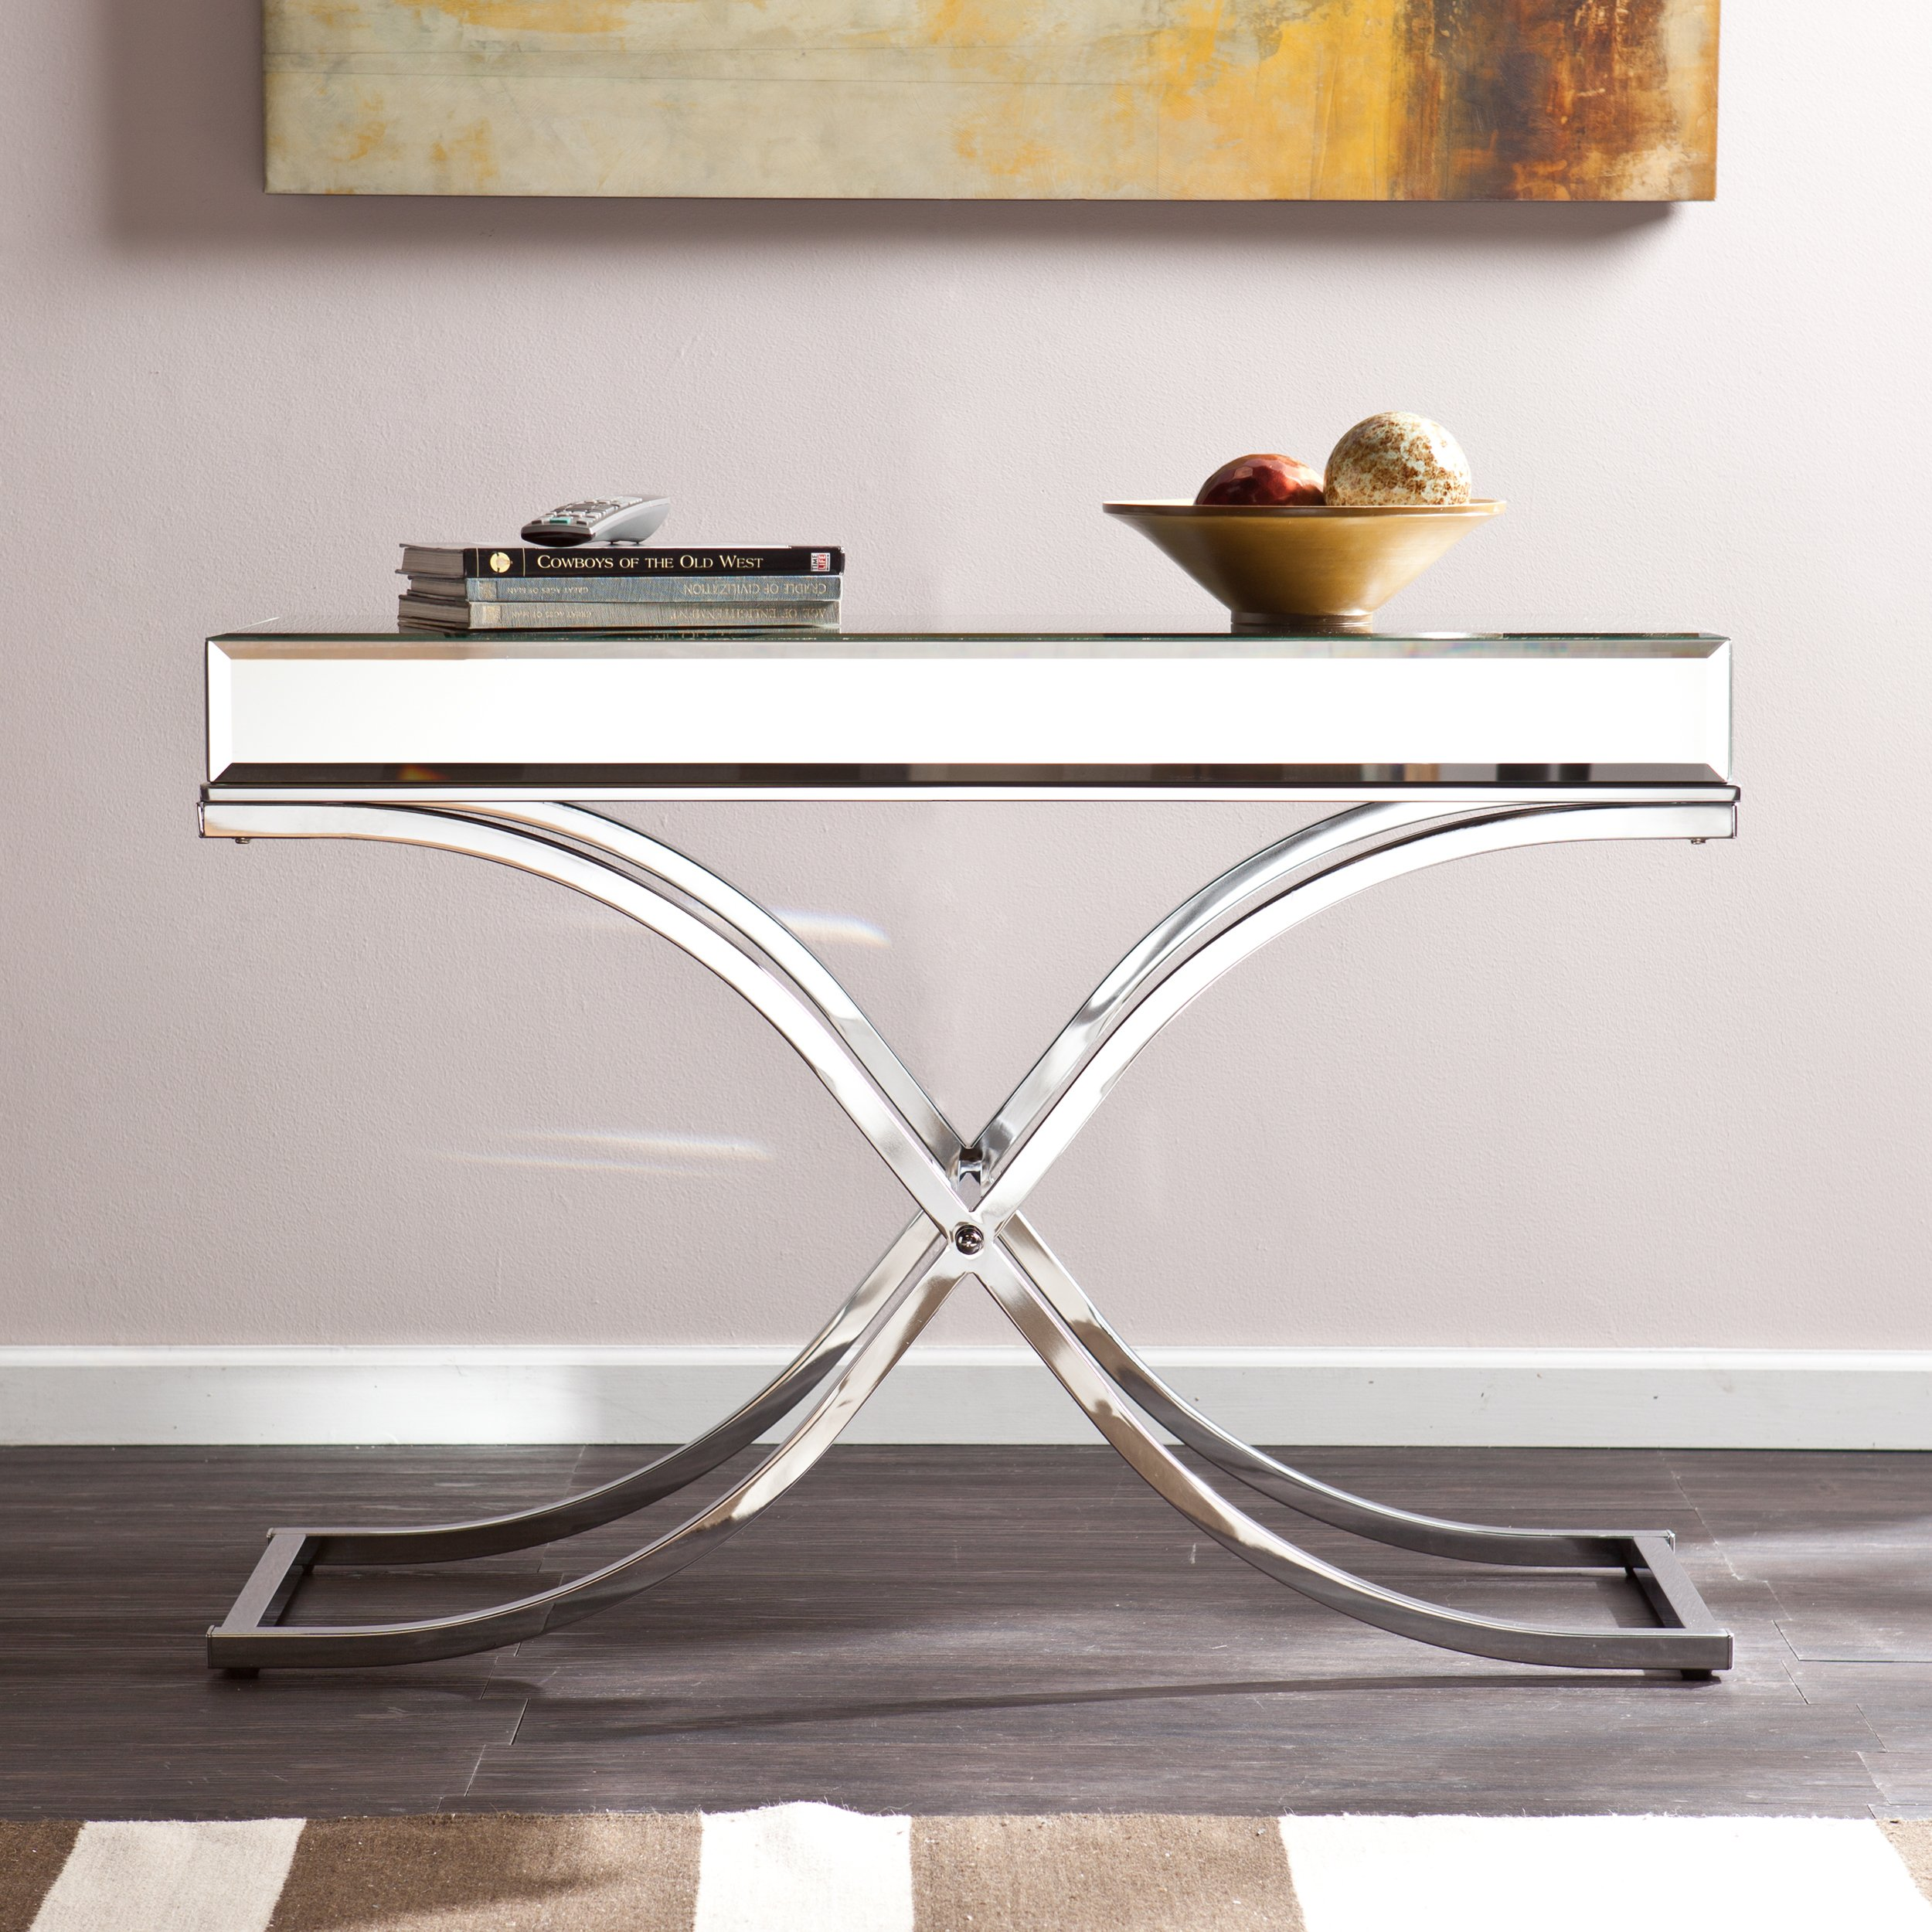 Ava Mirrored Console Table - Chrome Frame Finish - Contemporary Glam Style by Southern Enterprises